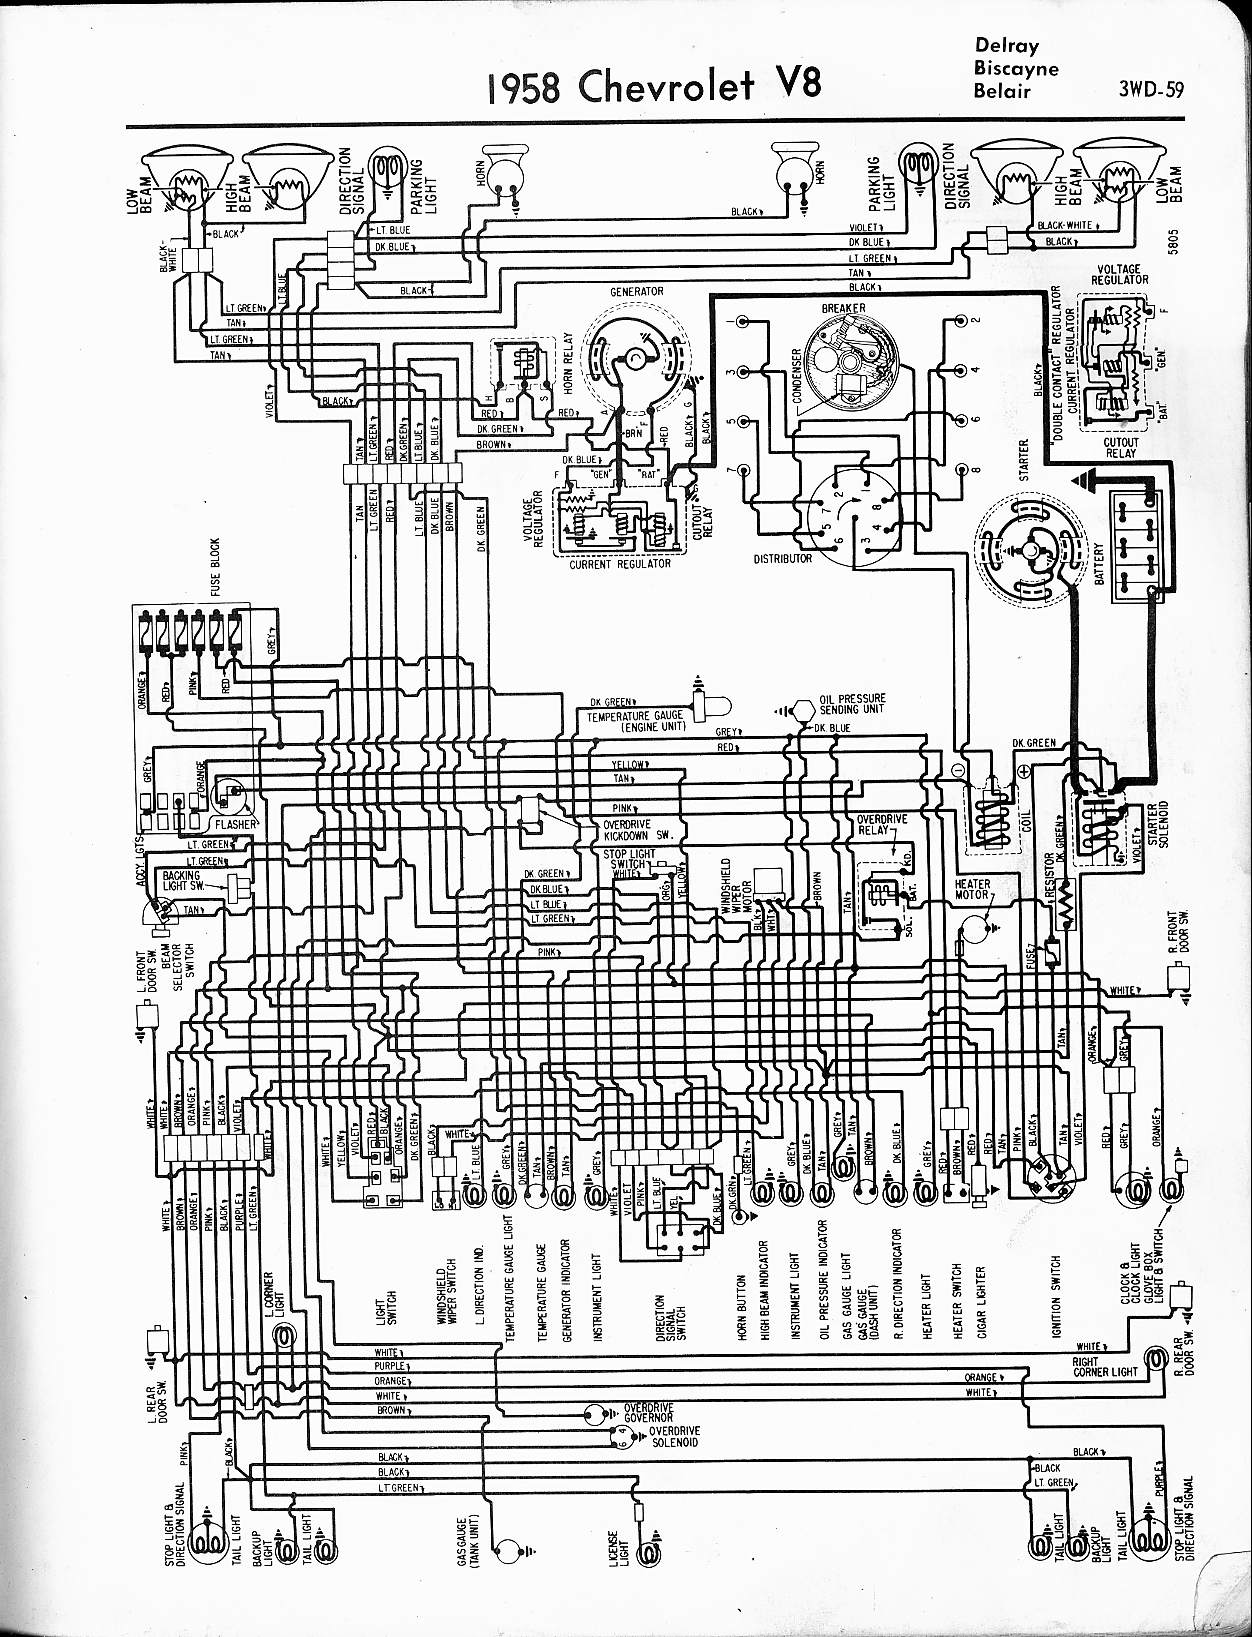 MWireChev58_3WD 059 57 65 chevy wiring diagrams chevy wiring schematics at fashall.co